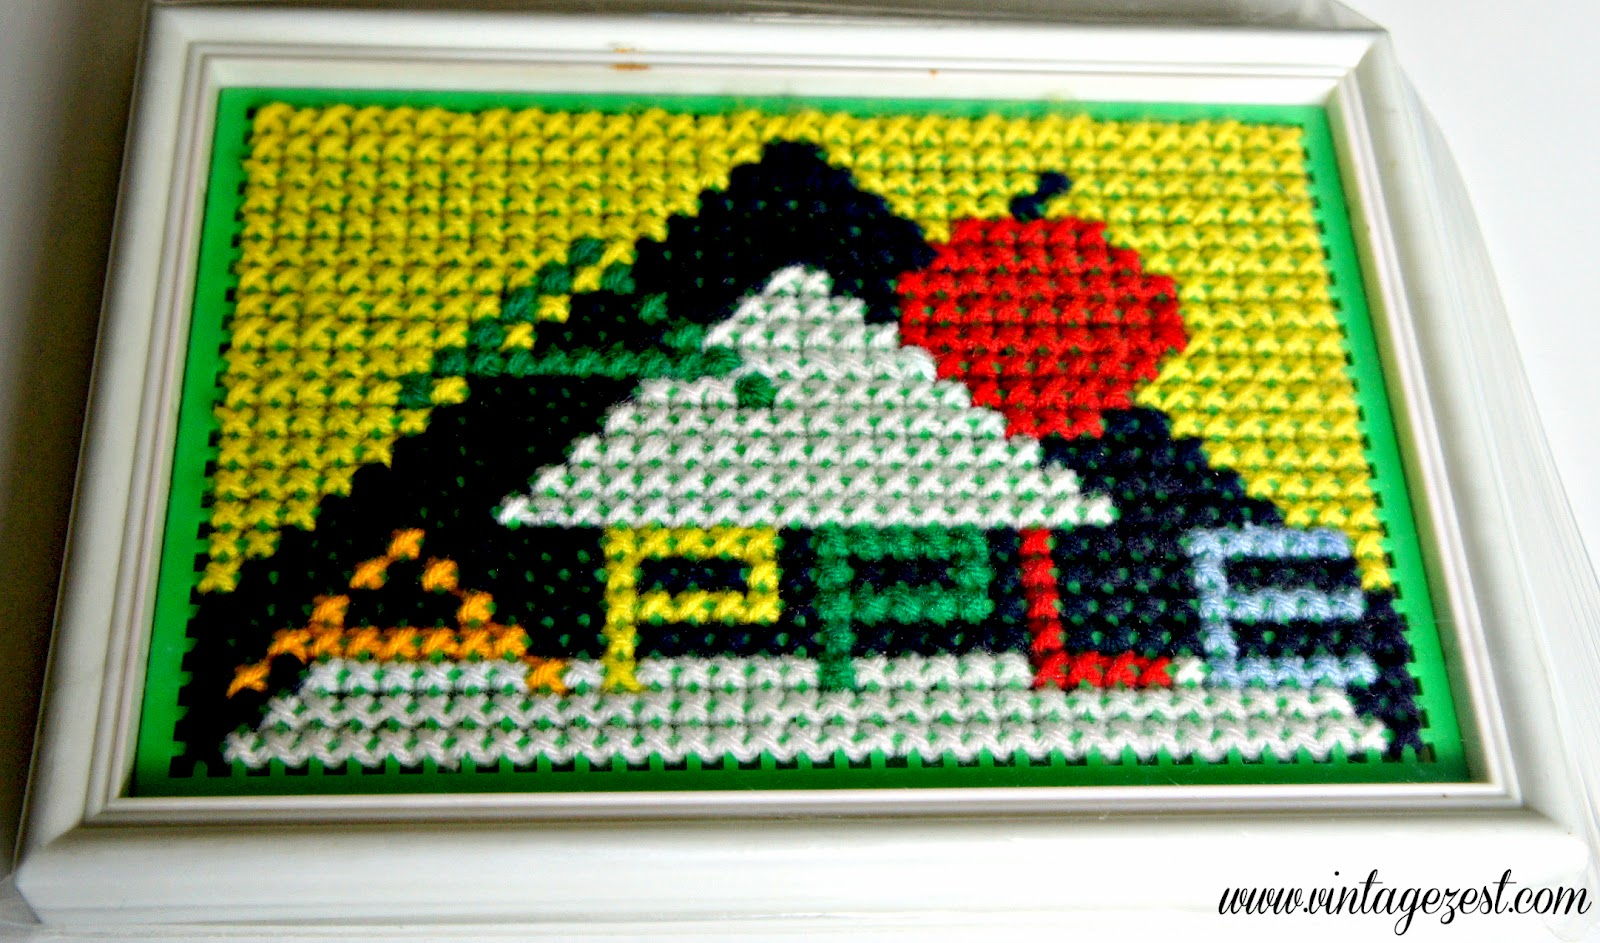 Craft Rewind: Cross-Stitching on Diane's Vintage Zest!